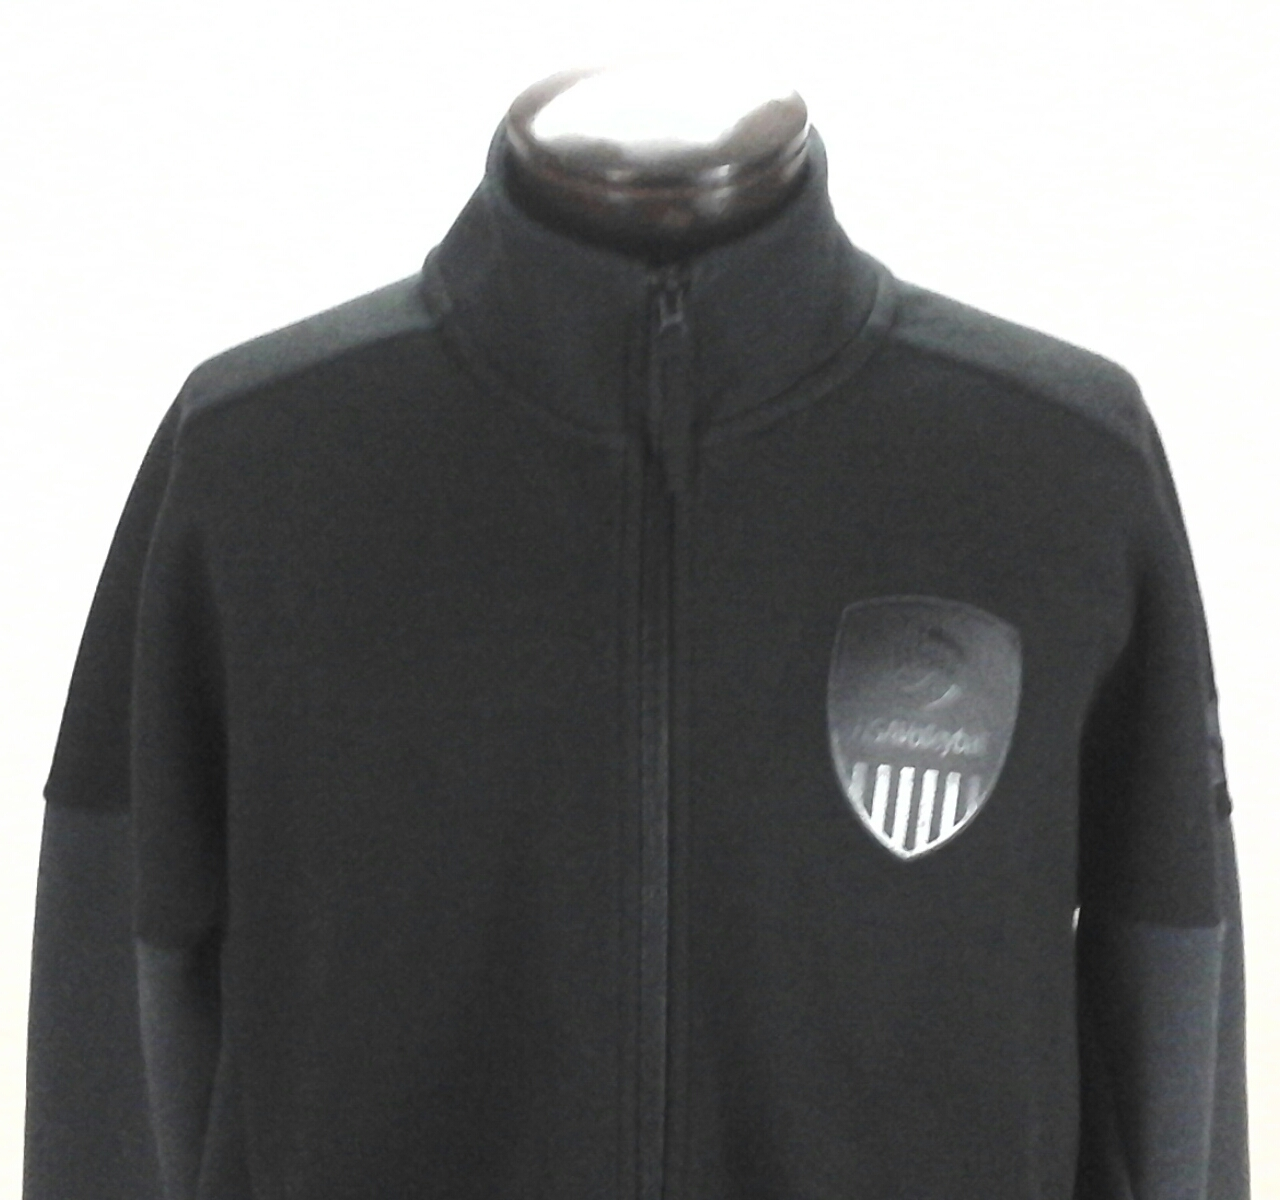 ADIDAS USA Volleyball Jacket Zip Up Black w Gray Official CF1417 Men's New | eBay